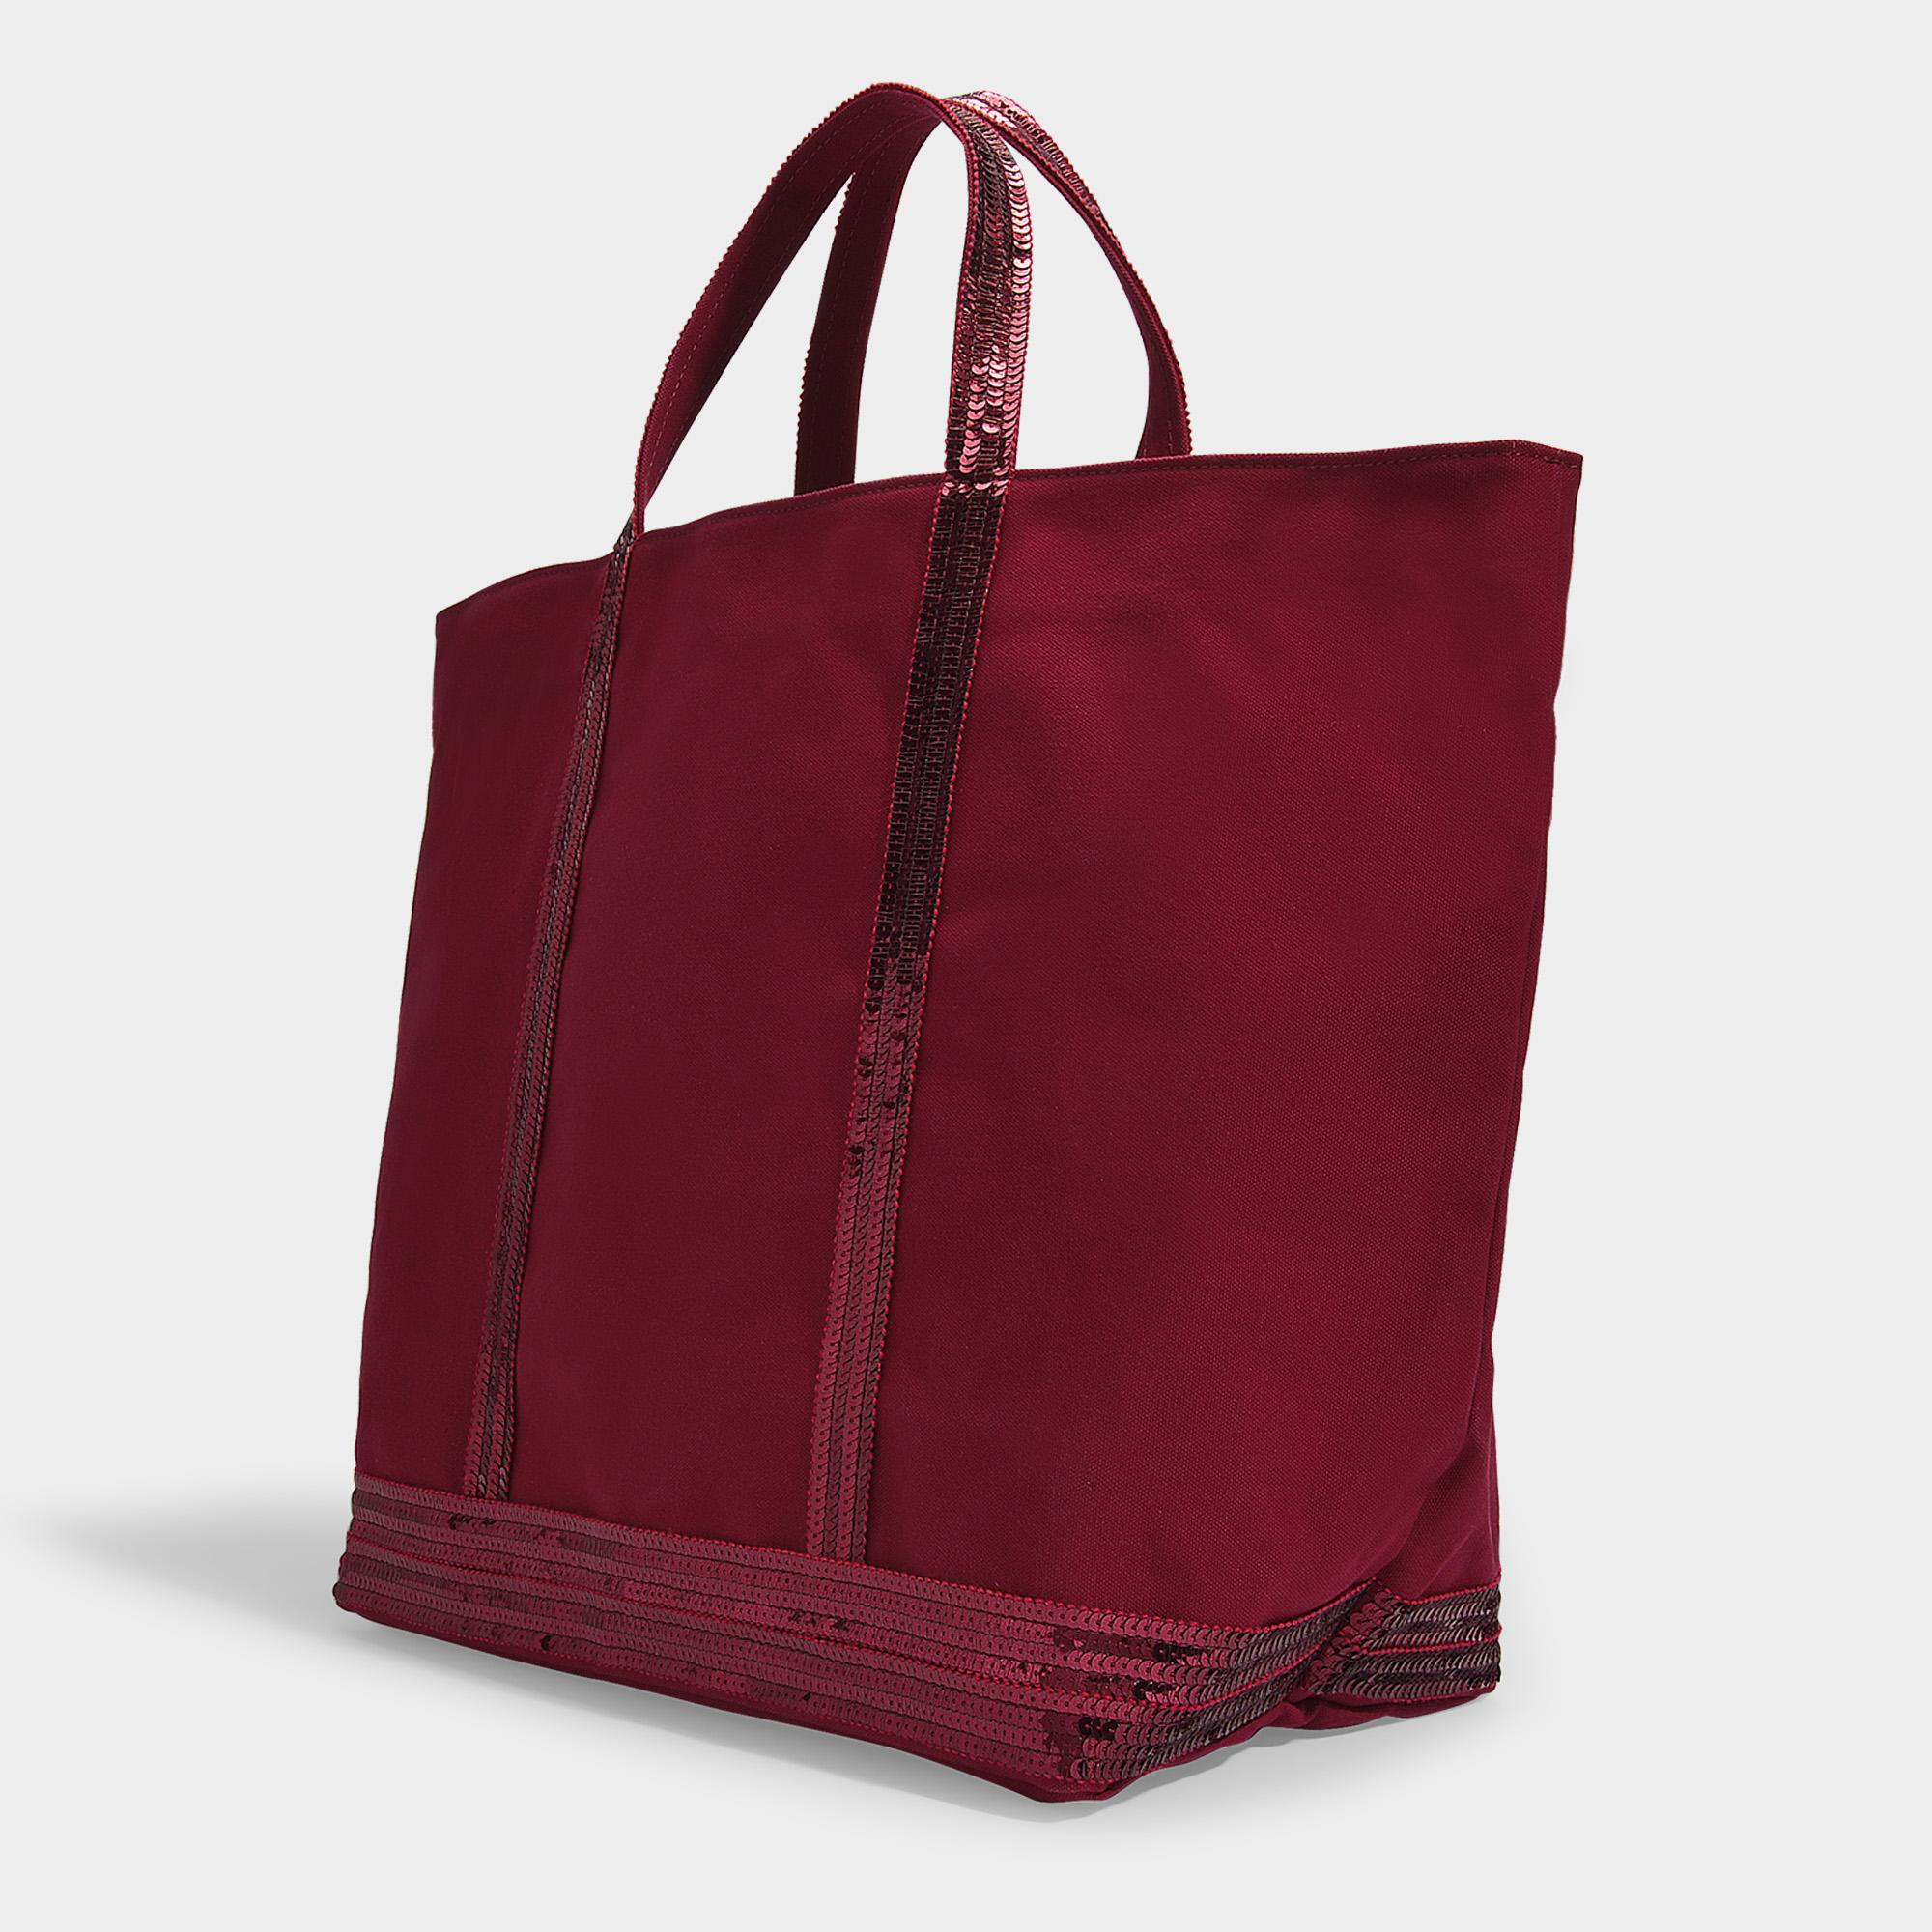 3100f6359c9be4 Vanessa Bruno - Red Large Cabas Tote Bag In Burgundy Canvas And Sequins -  Lyst. View fullscreen